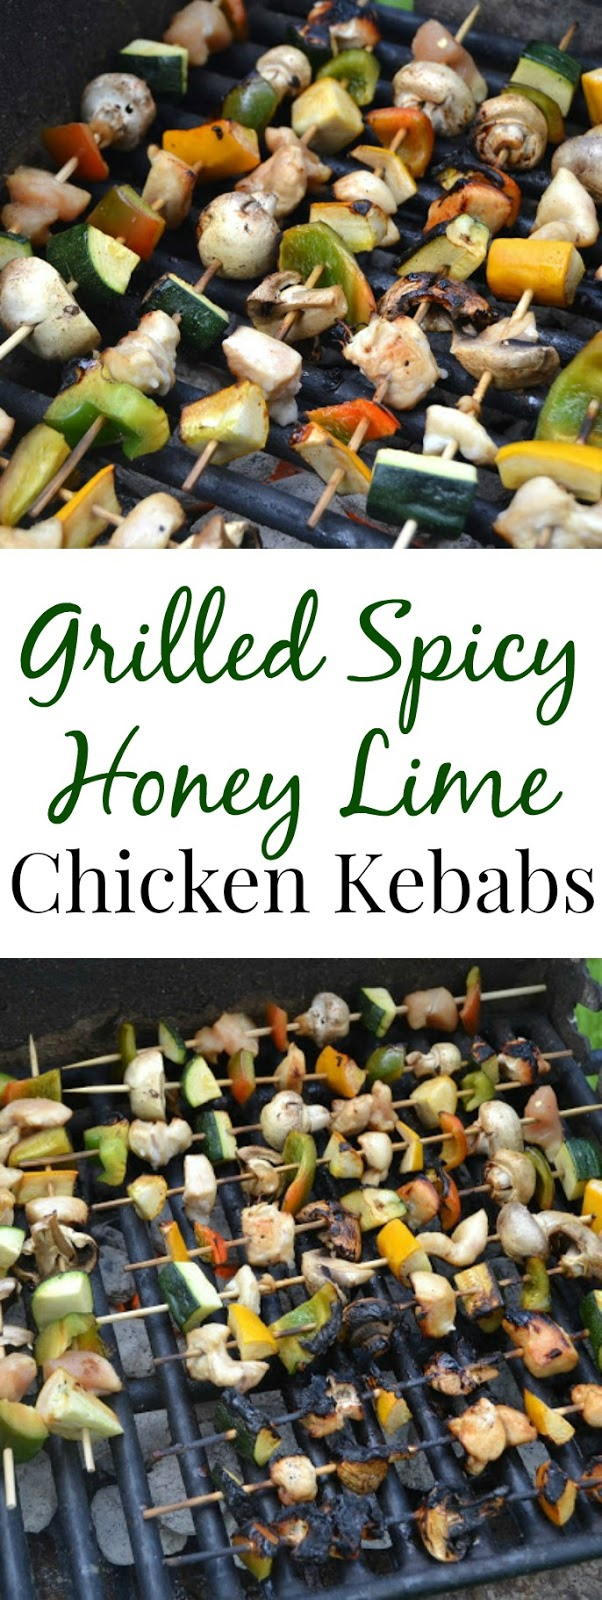 Grilled Spicy Honey Lime Chicken Kebabs make the perfect summer meal and are marinated in a spicy and sweet sauce! www.nutritionistreviews.com